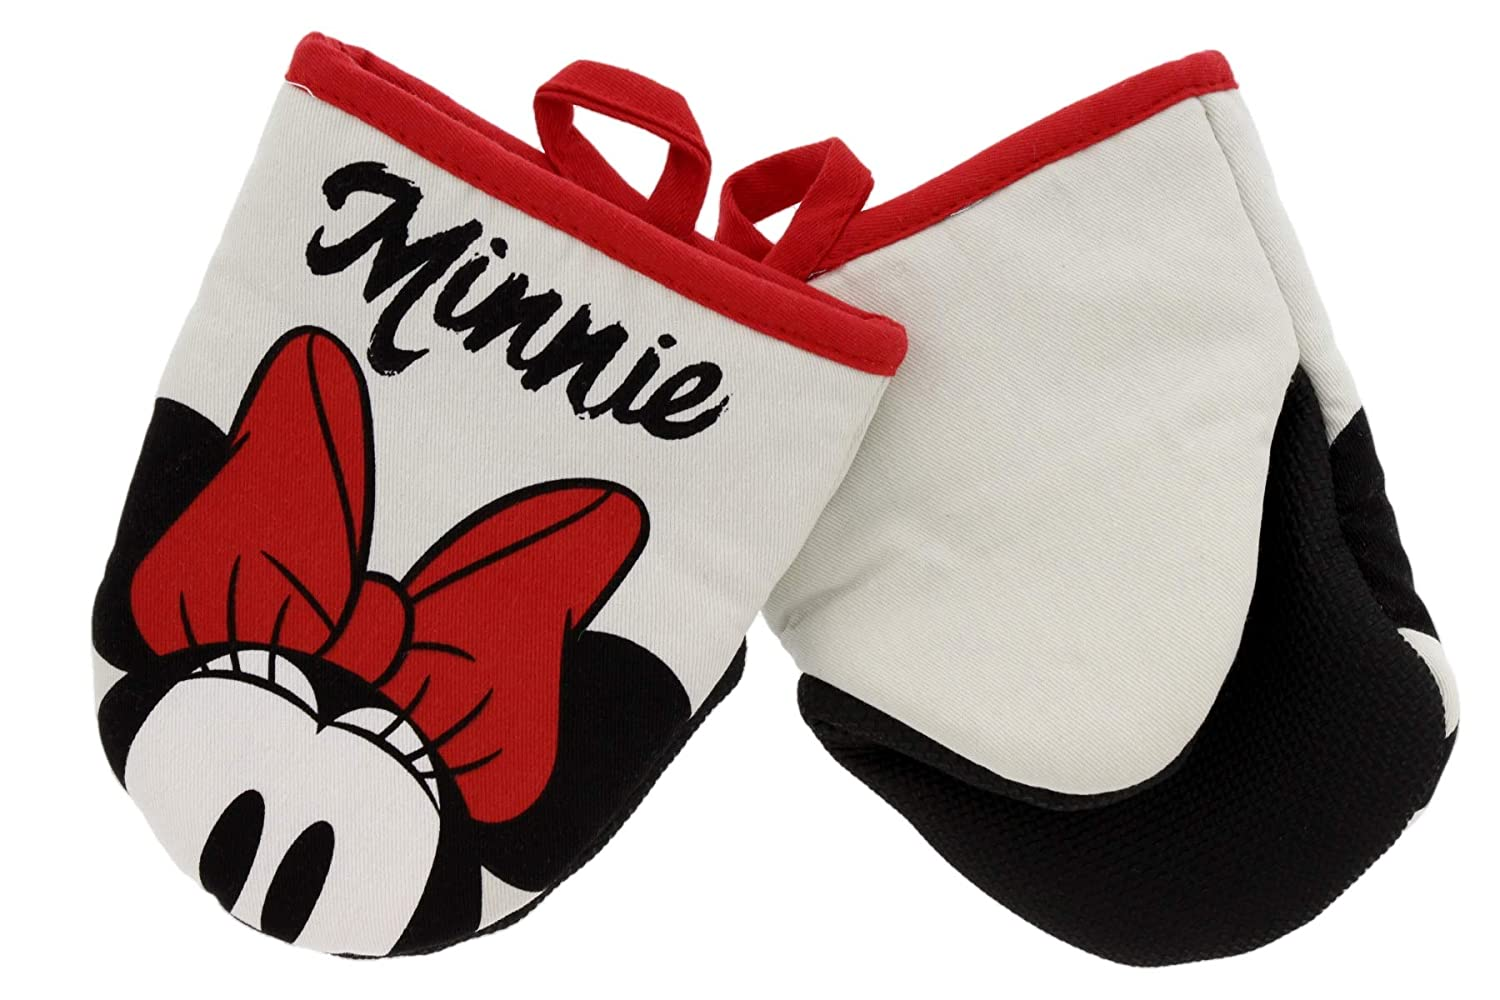 "Disney Kitchen Cotton Mini Oven Mitts/Glove Set w/Neoprene Insulation for Easy Gripping While Cooking, Heat Resistant Kitchen Accessories, 5.5"" x 6.5"", Minnie Light Grey Face, 2pk"